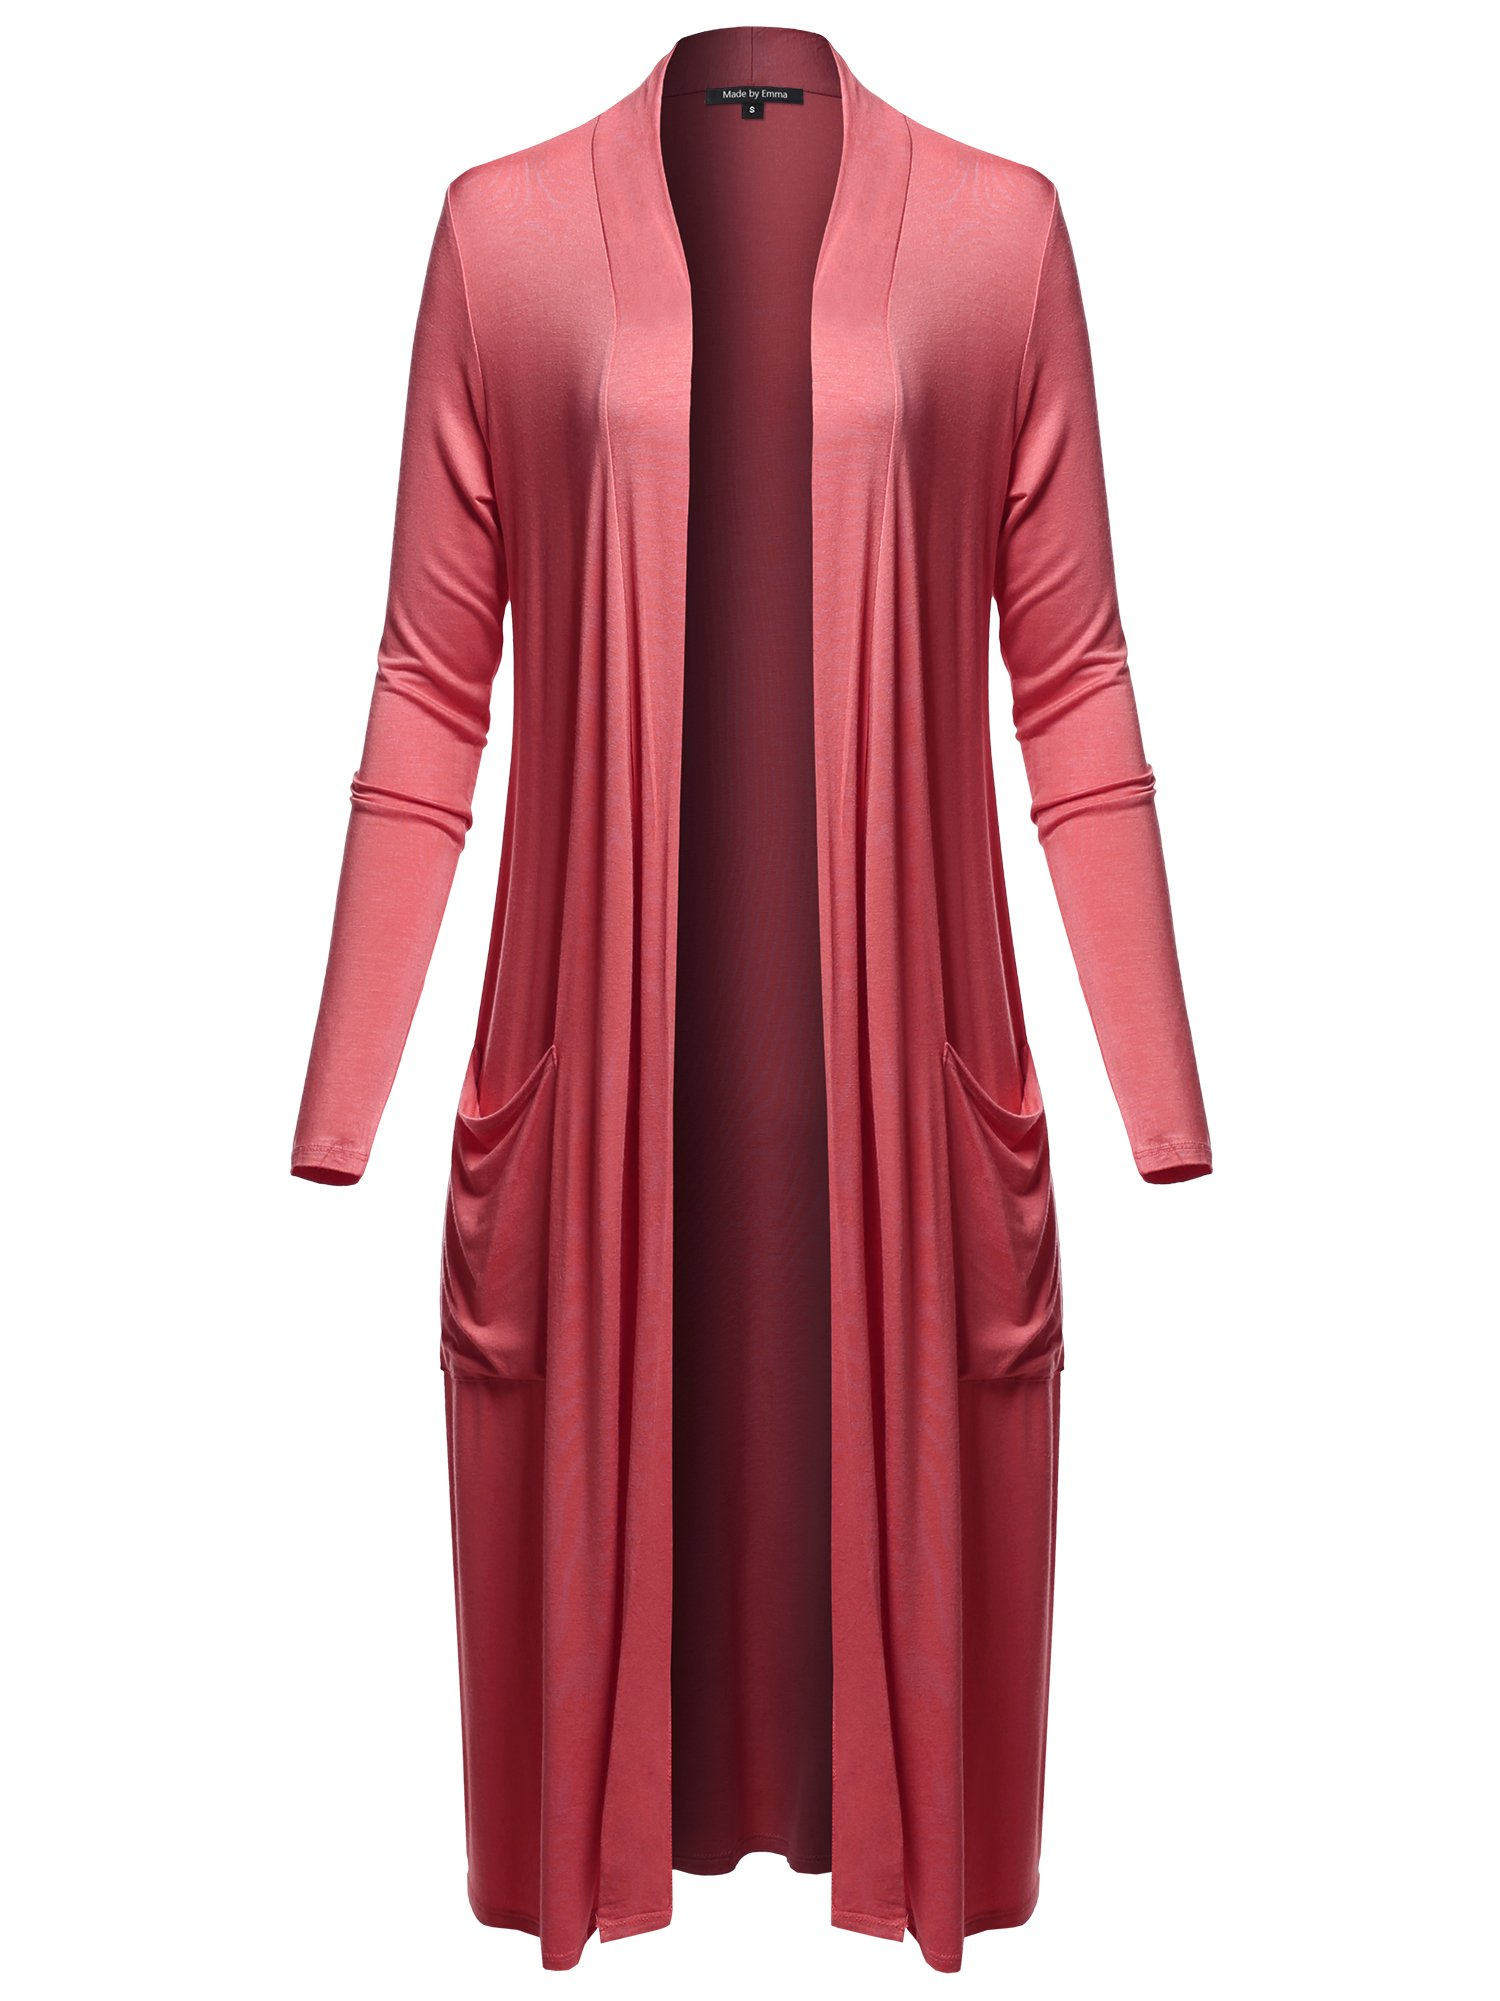 Made by Emma Long Sleeve Side Pockets Midi Length Open Front Cardigan Raspberry M